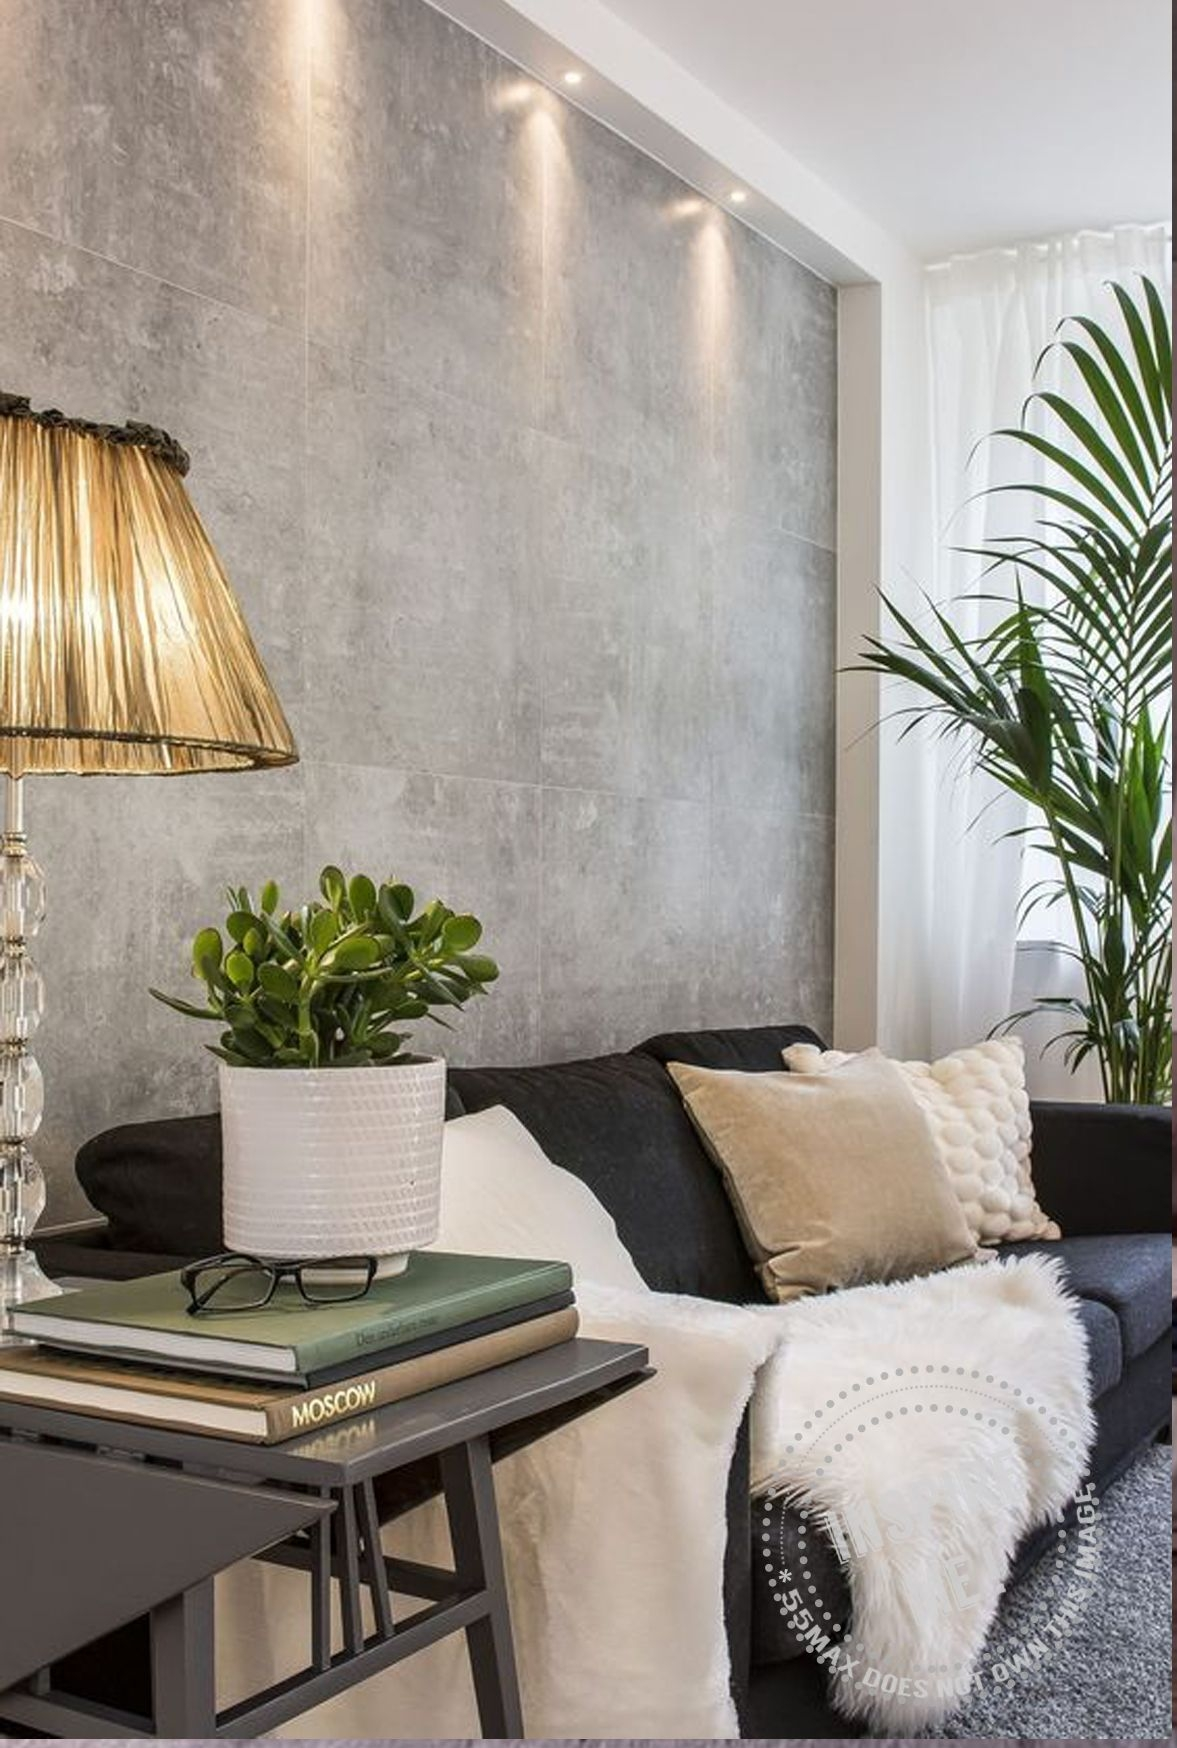 Exquisite Wall Pictures for Living Room On Nice-looking Beautiful Grey Metallic Statement Wall Art Lighting Up Your On Wall Pictures for Living Room